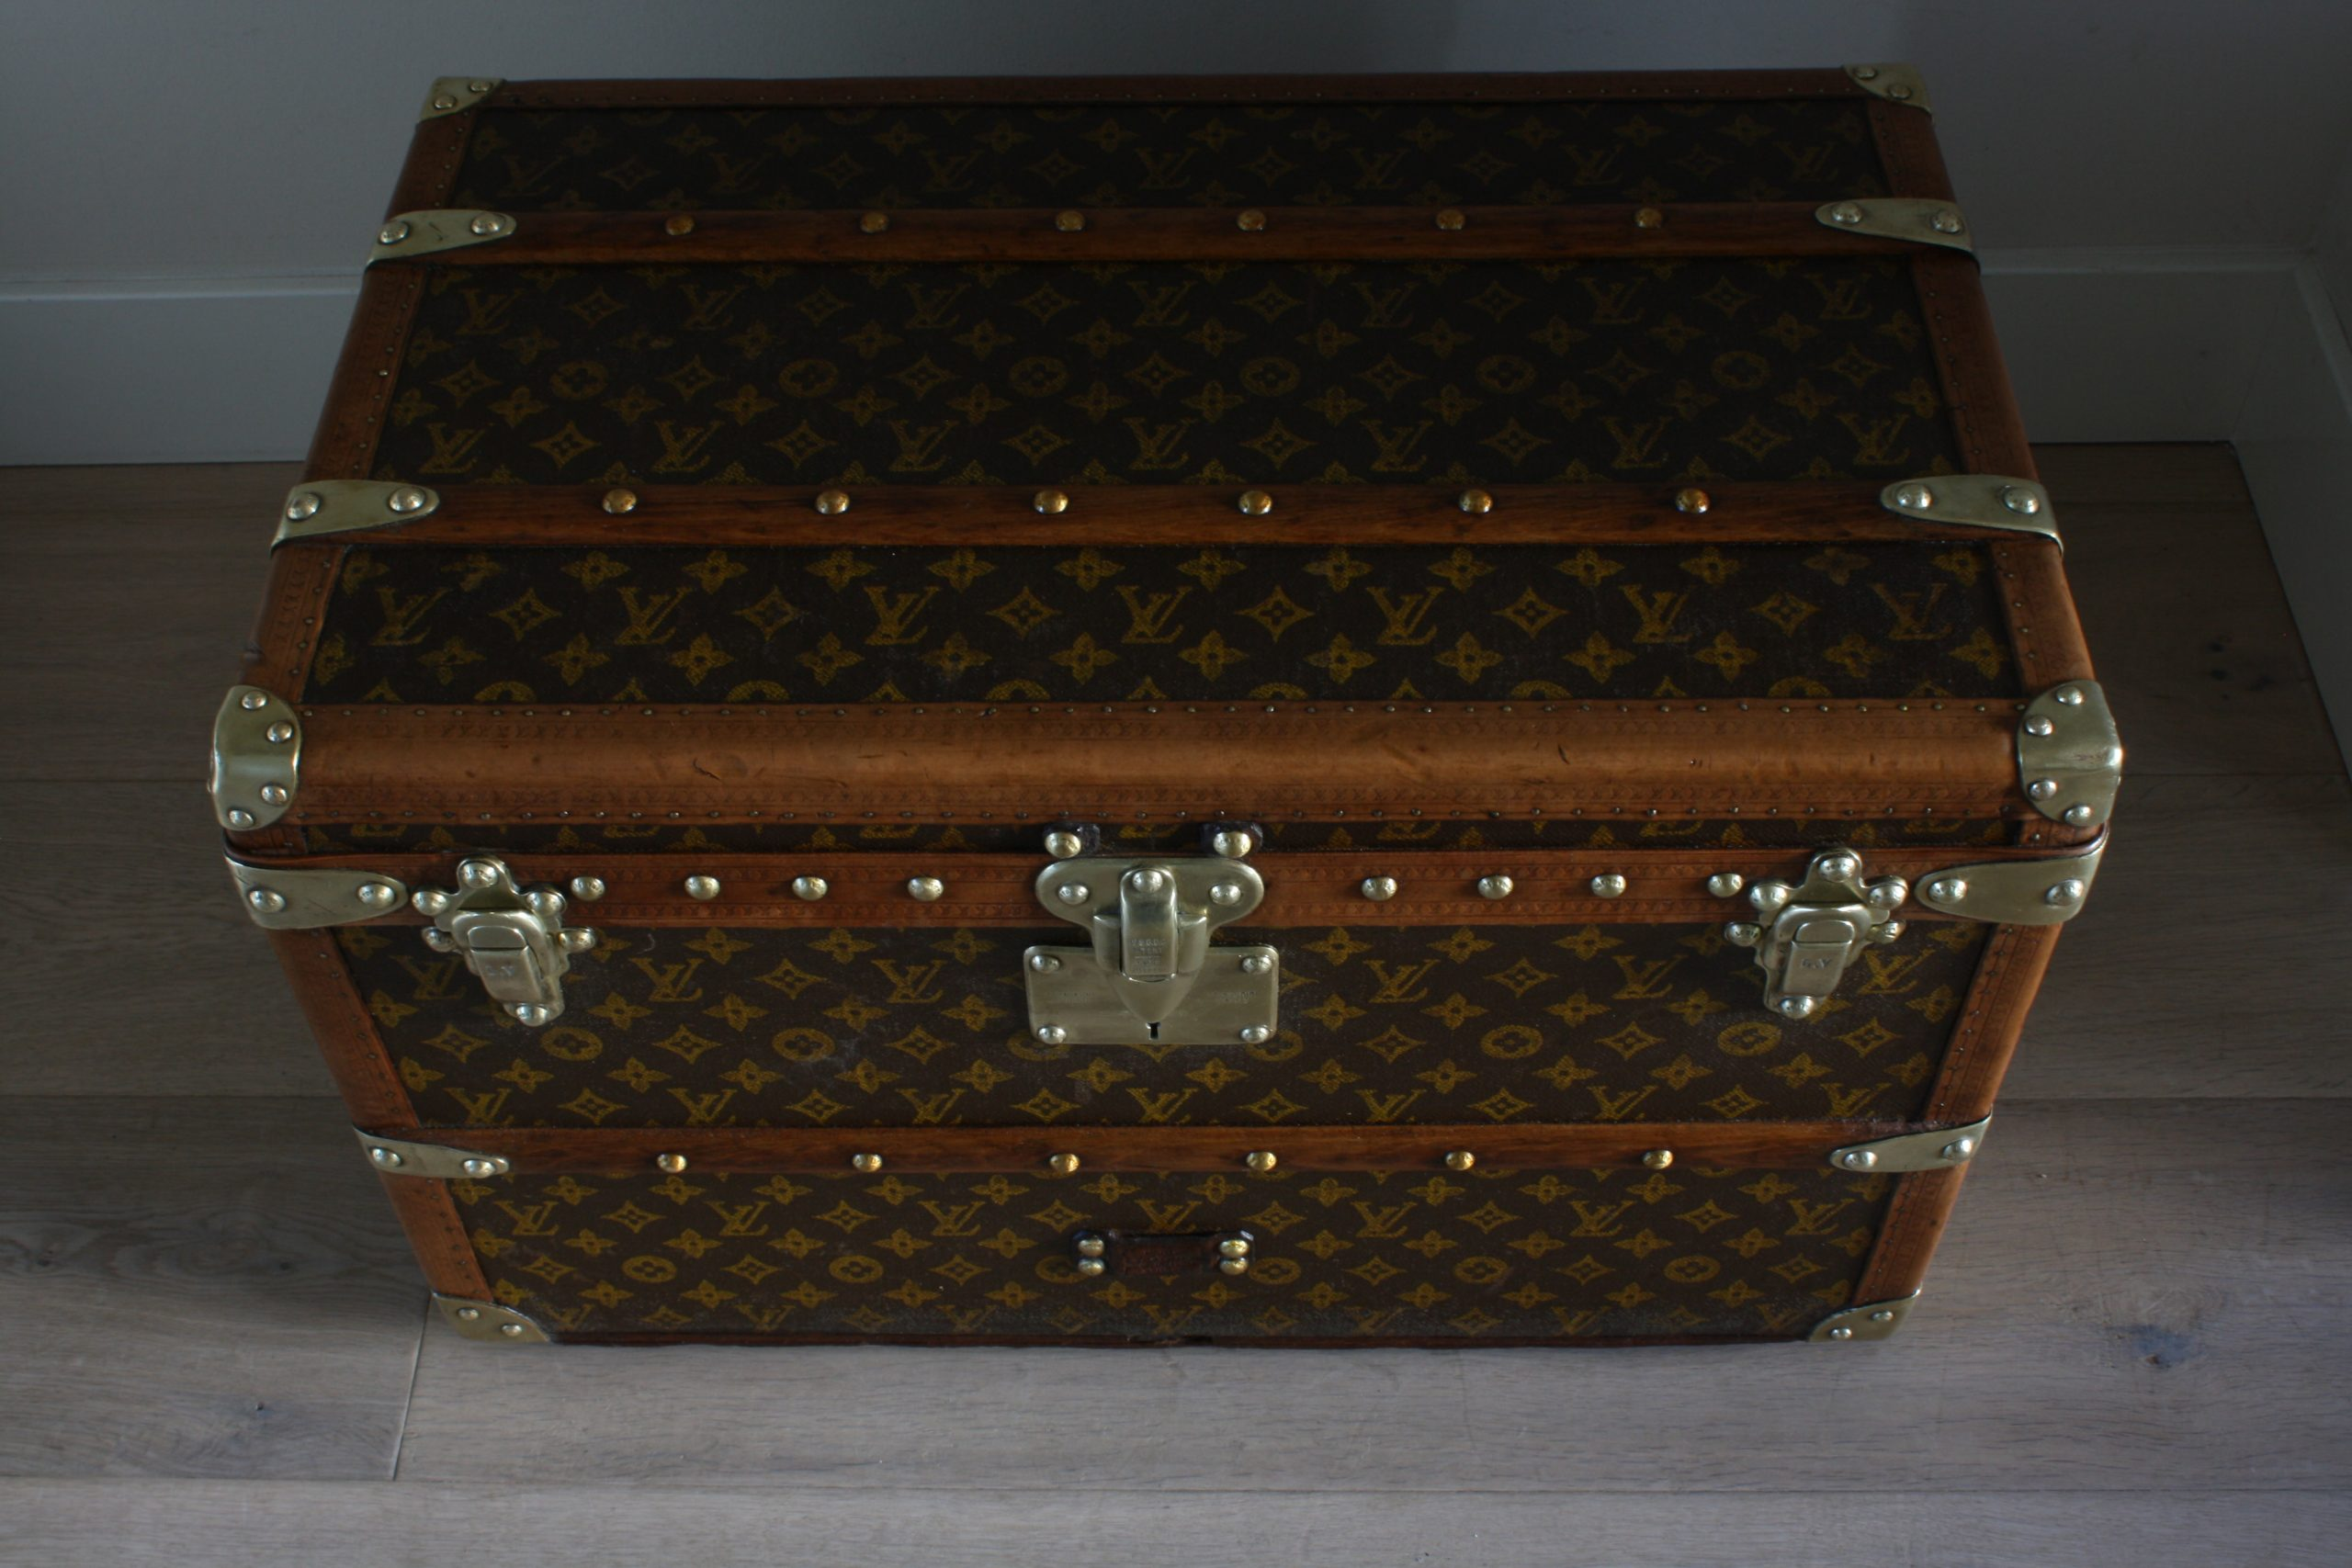 small-coffee-table-trunk-louis-vuitton-top